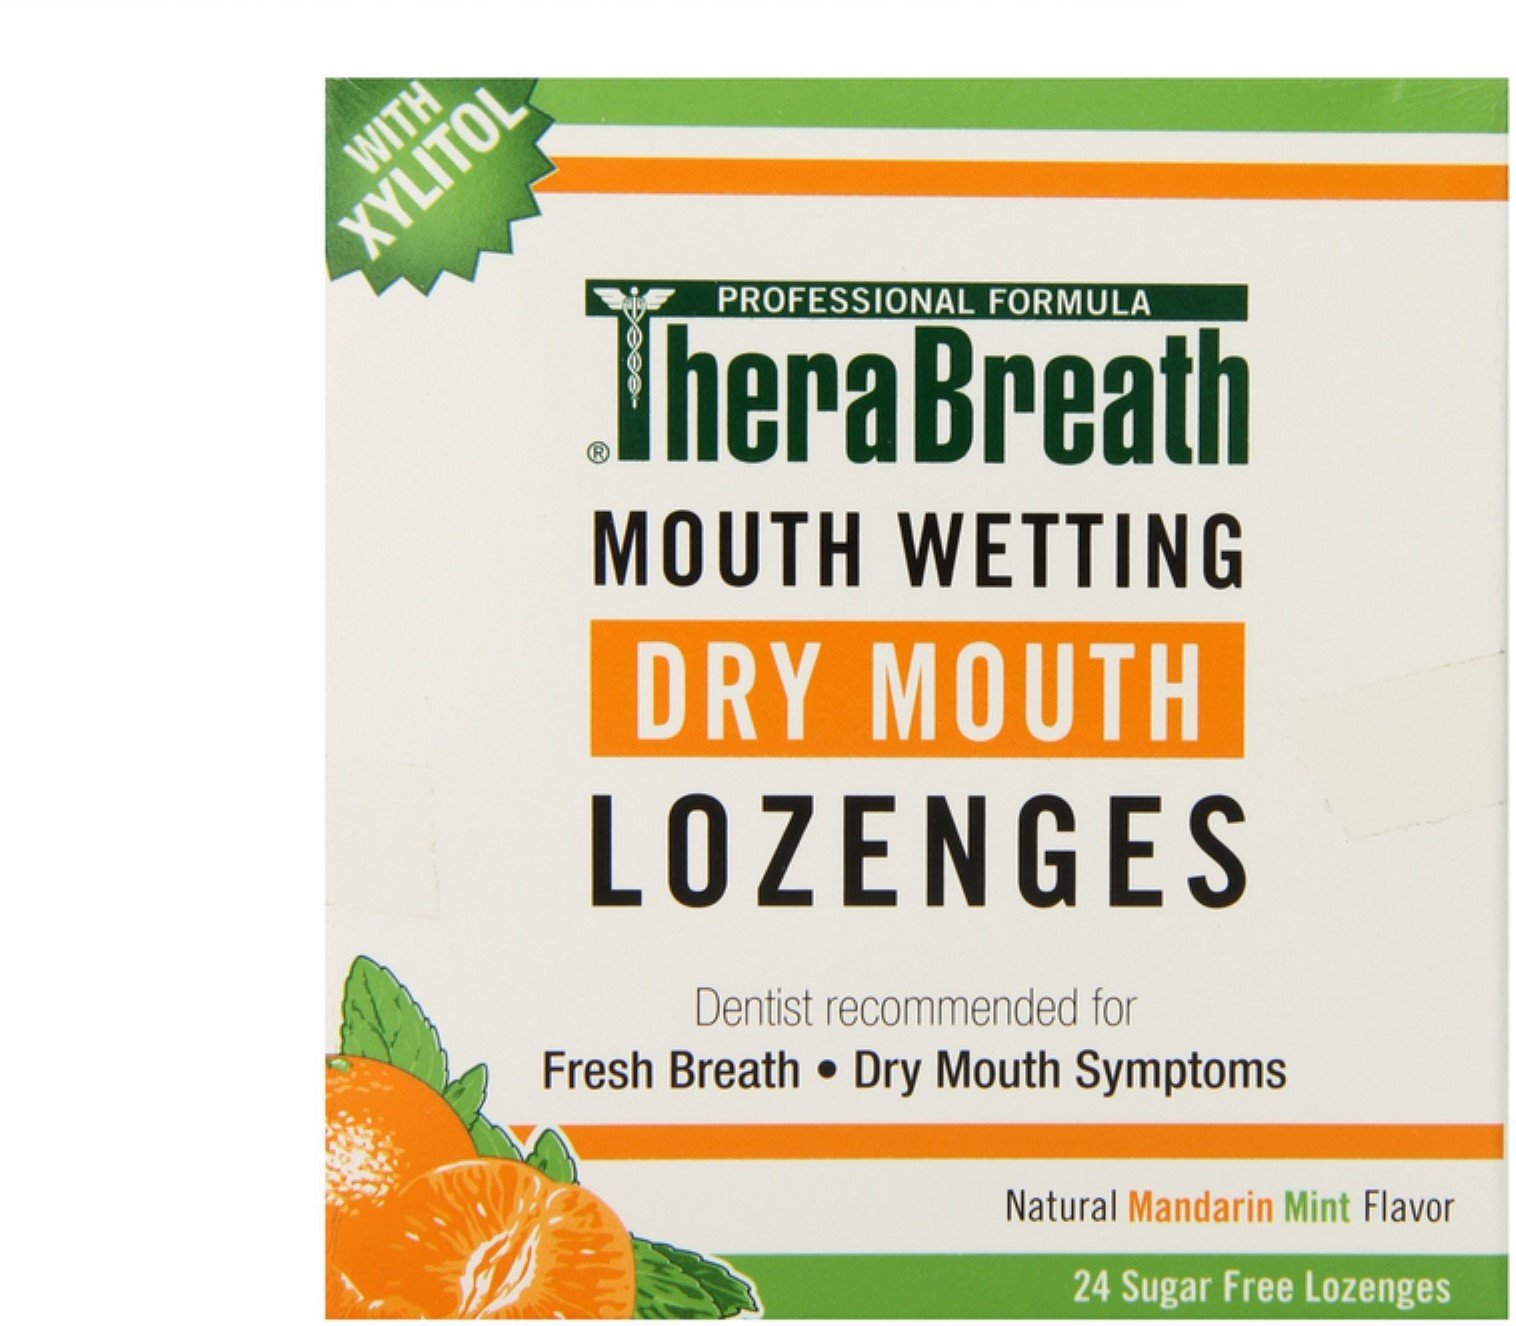 TheraBreath Dry Mouth Lozenges, Sugar Free, Mandarin Mint Flavor, 24 ea (Pack of 6)